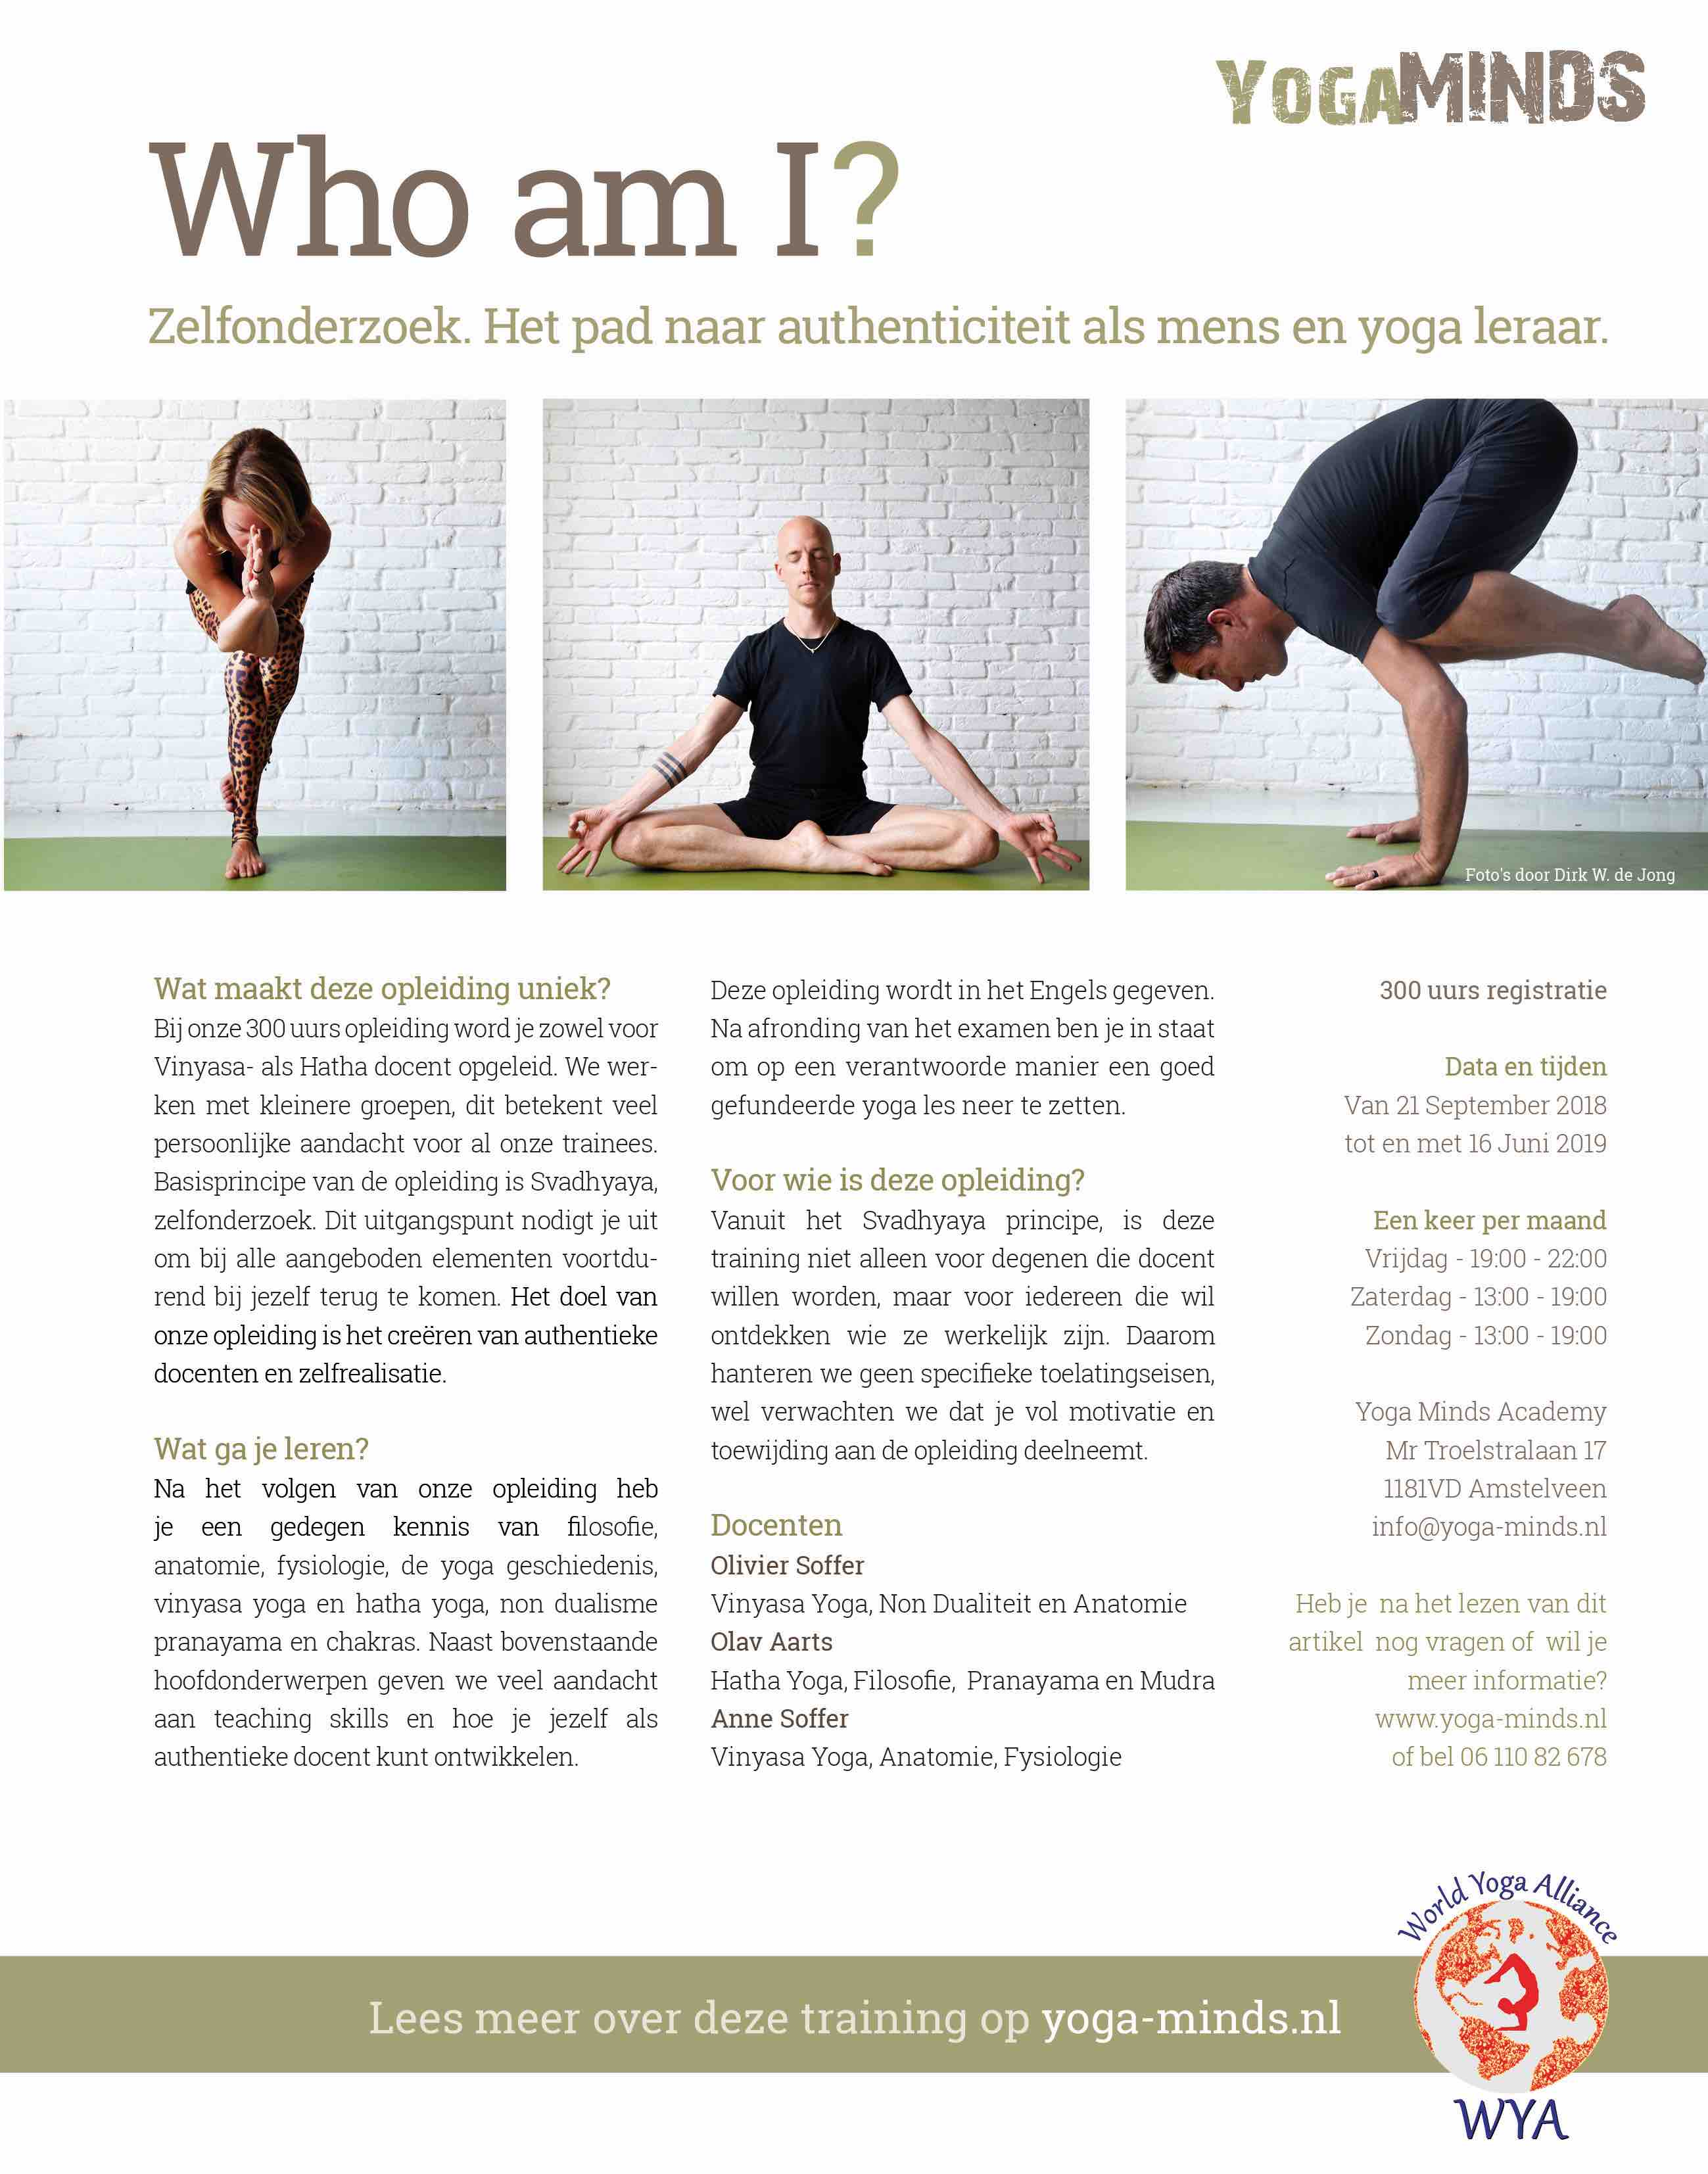 Yoga International Yoga Minds